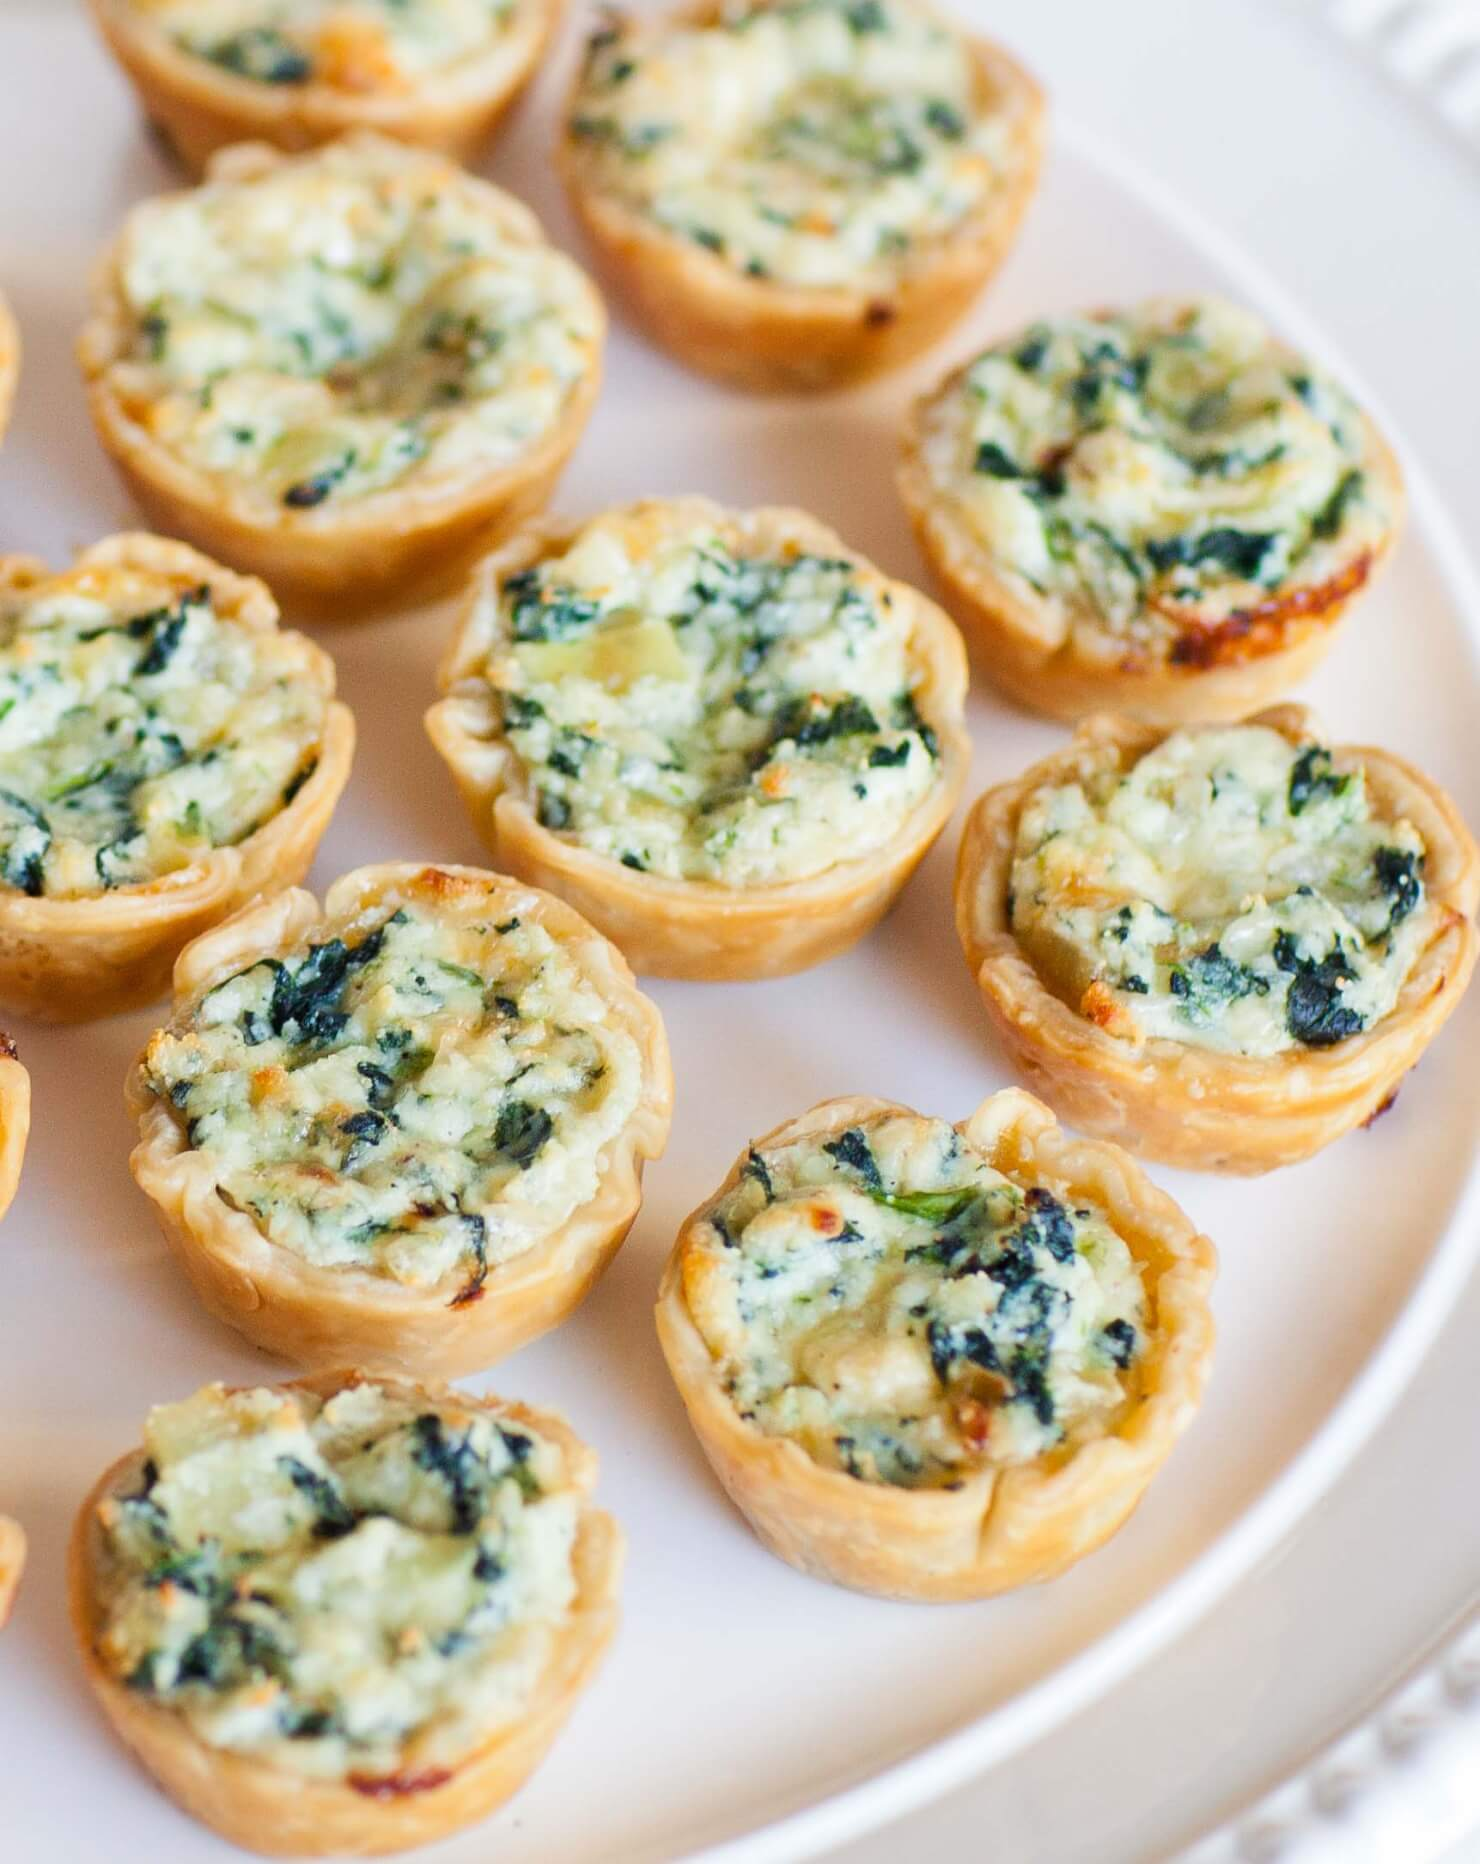 Petite quiche and ricotta canapes tatyanas everyday food for Hot canape ideas